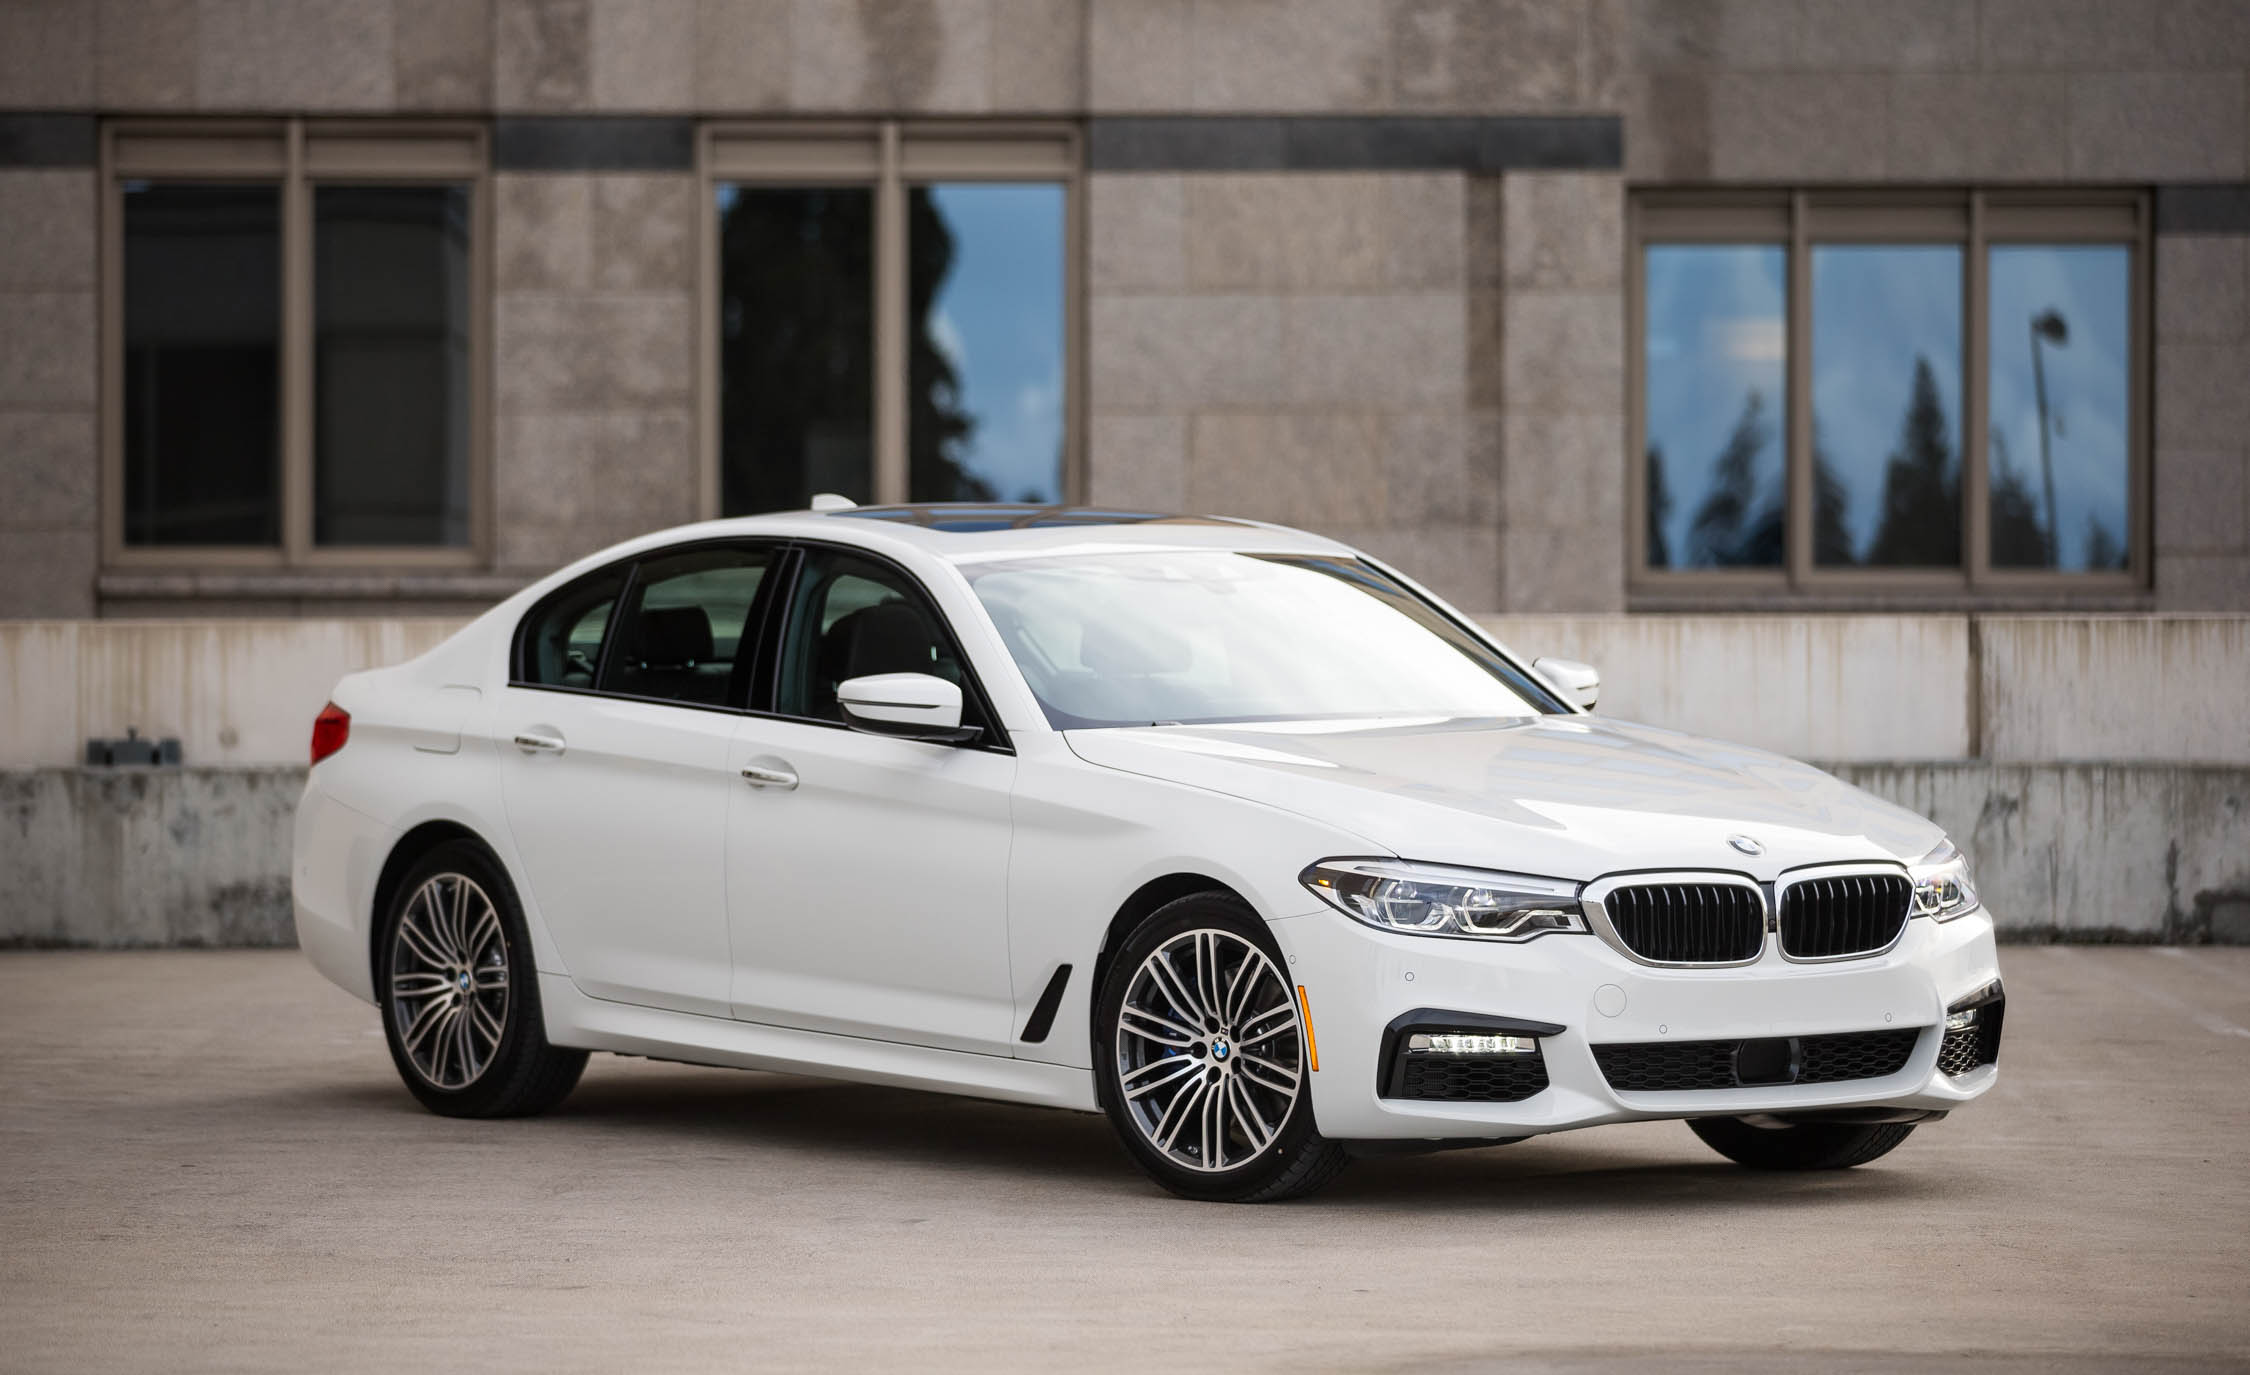 2017 BMW 530i (View 46 of 46)